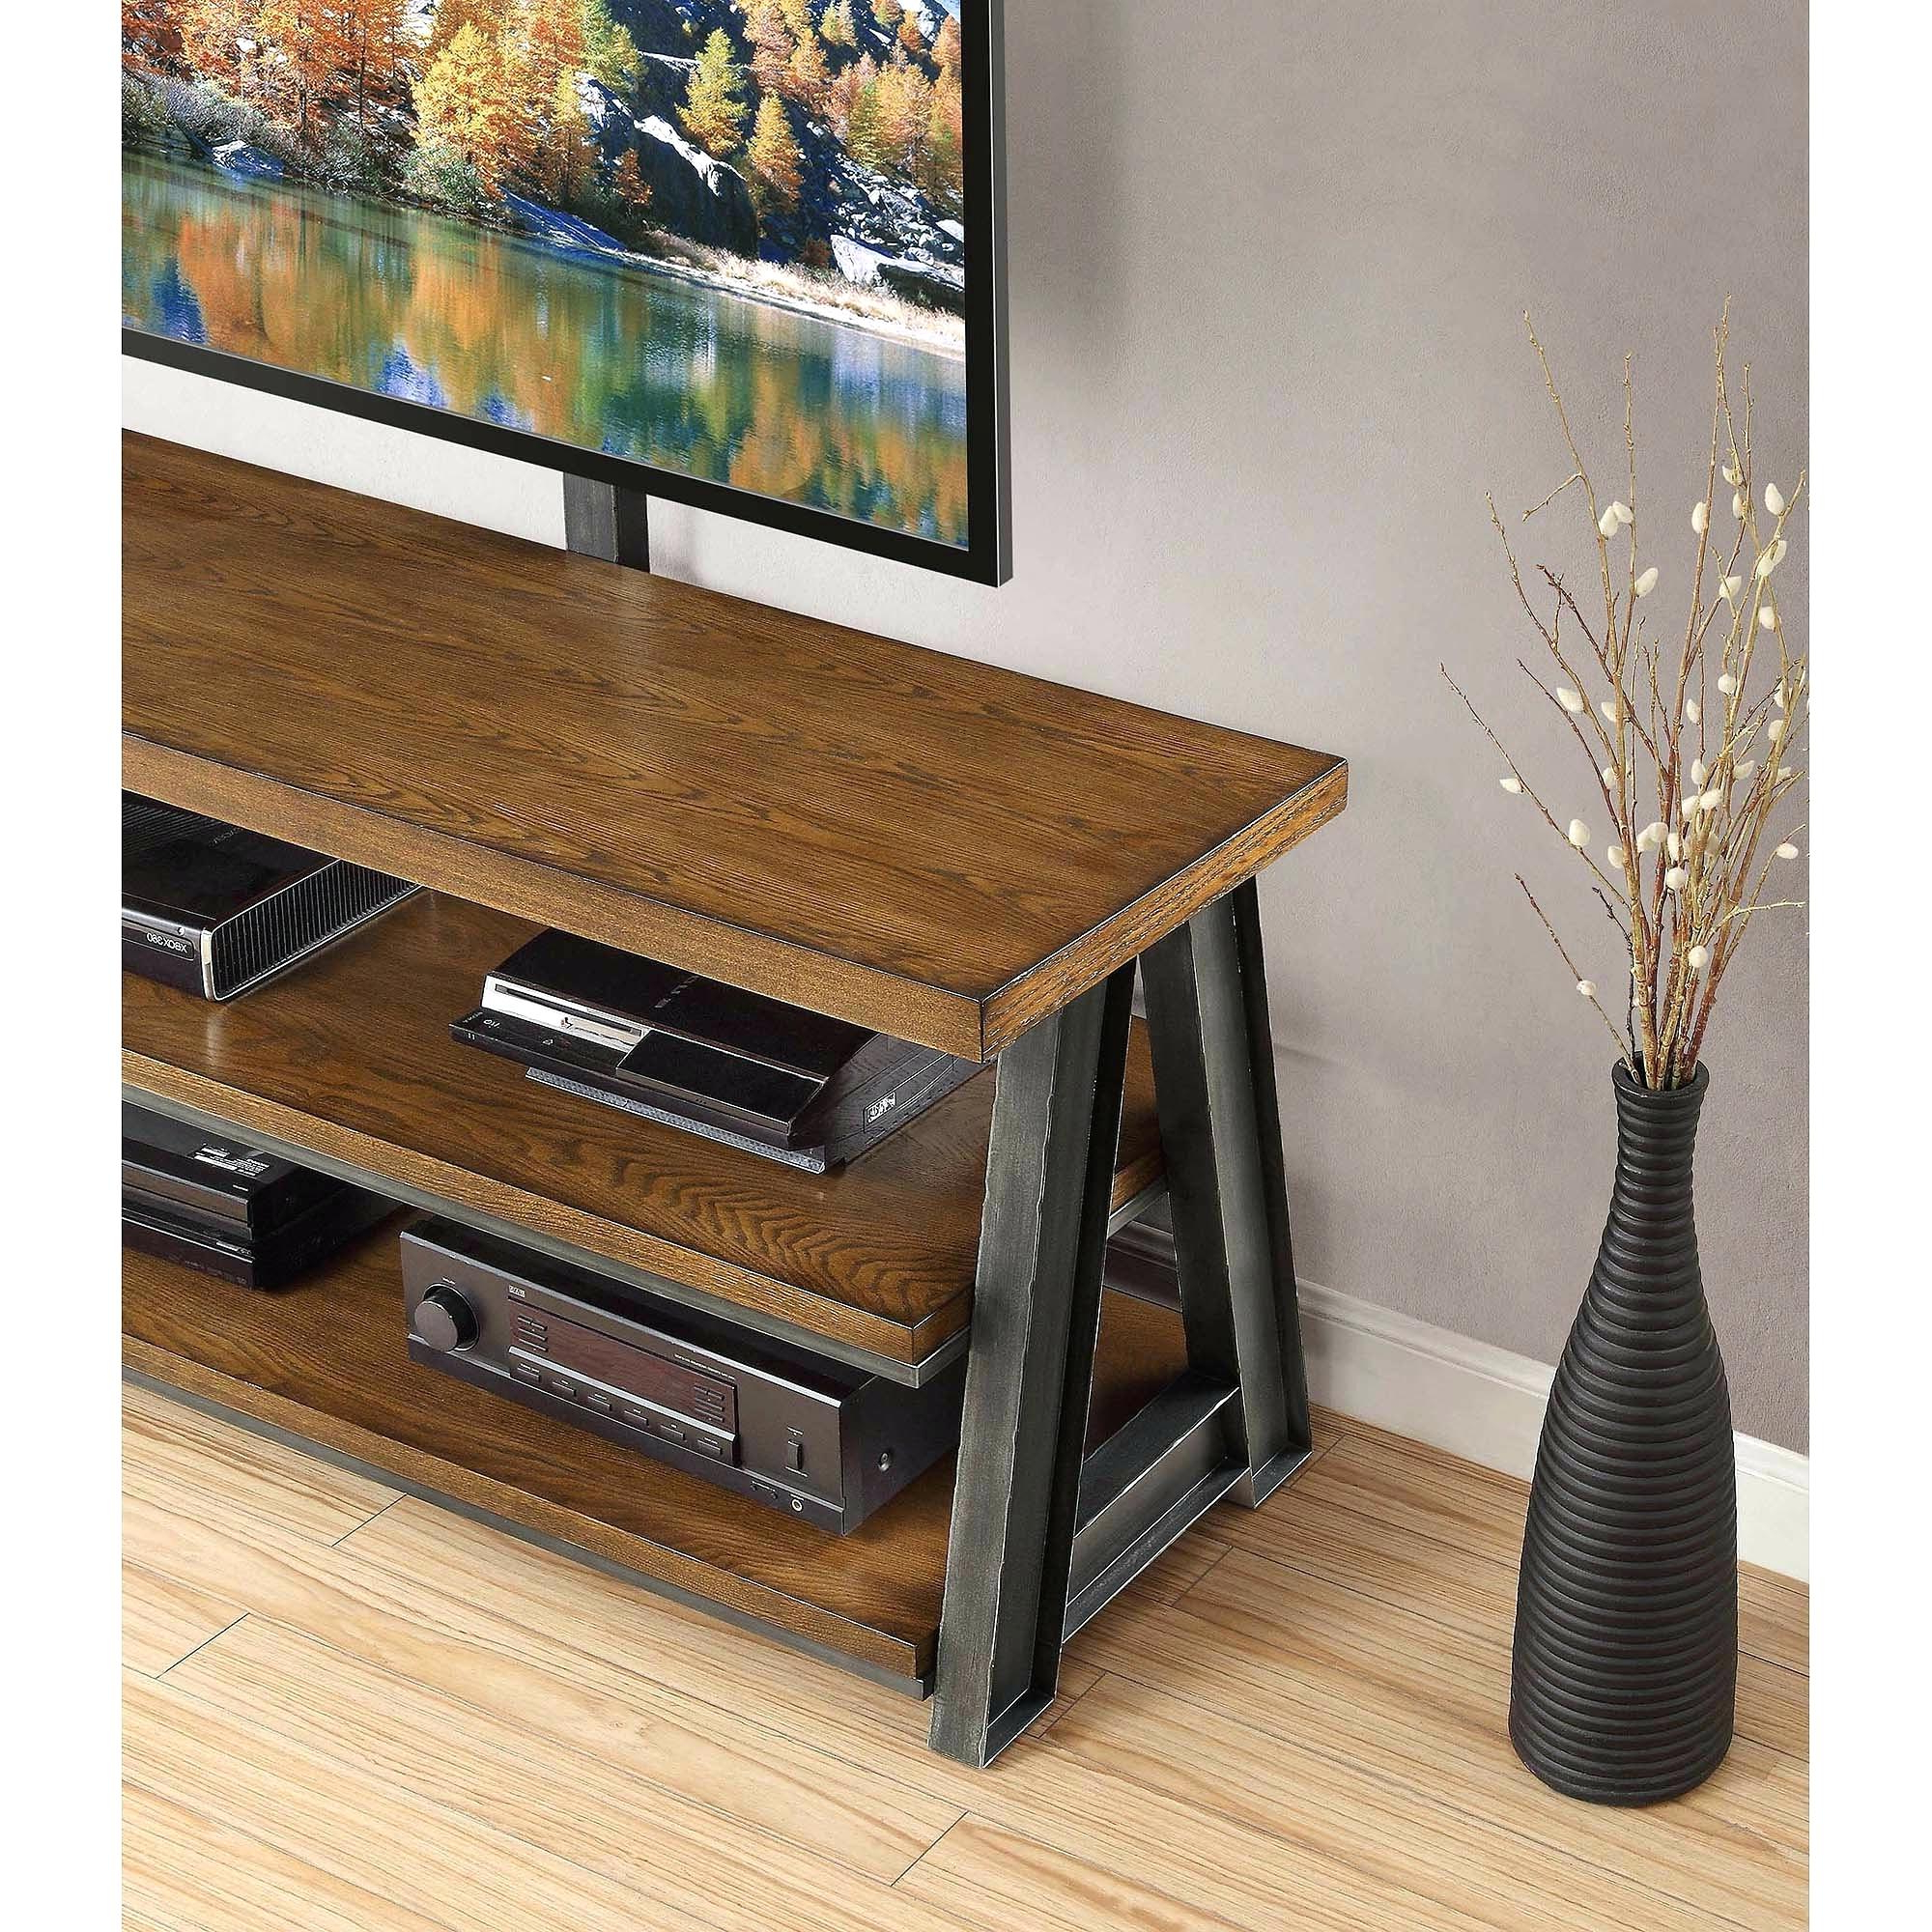 Tv Stands For 70 Inch Tvs St – Kcscienceinc With Best And Newest Tv Stands For 70 Inch Tvs (View 12 of 20)